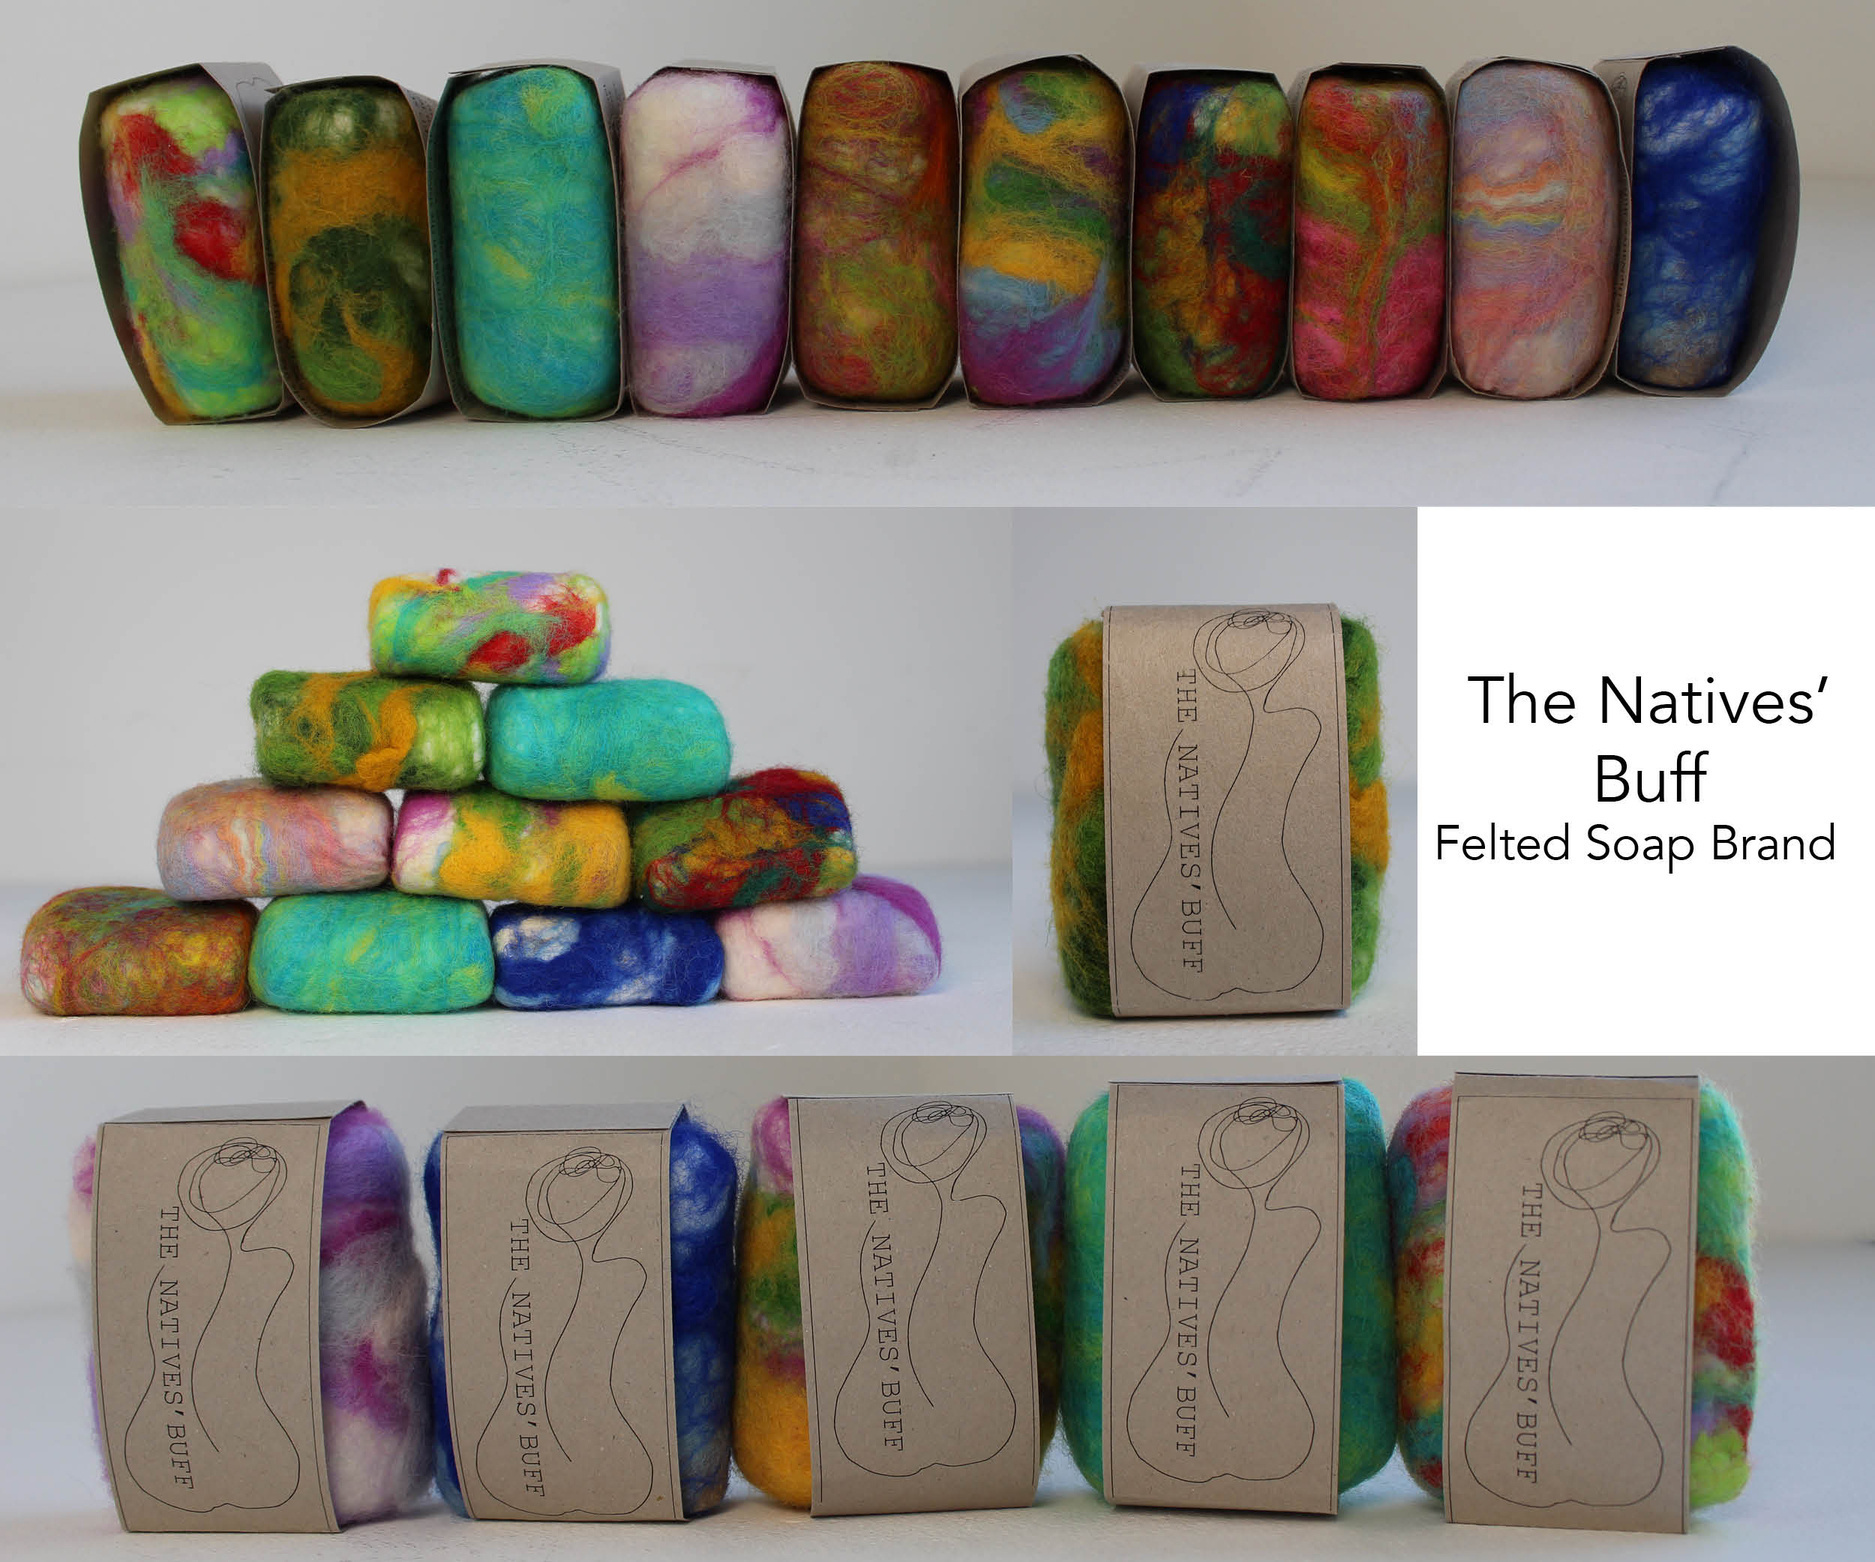 The Natives' Buff - Felted Soap Brand